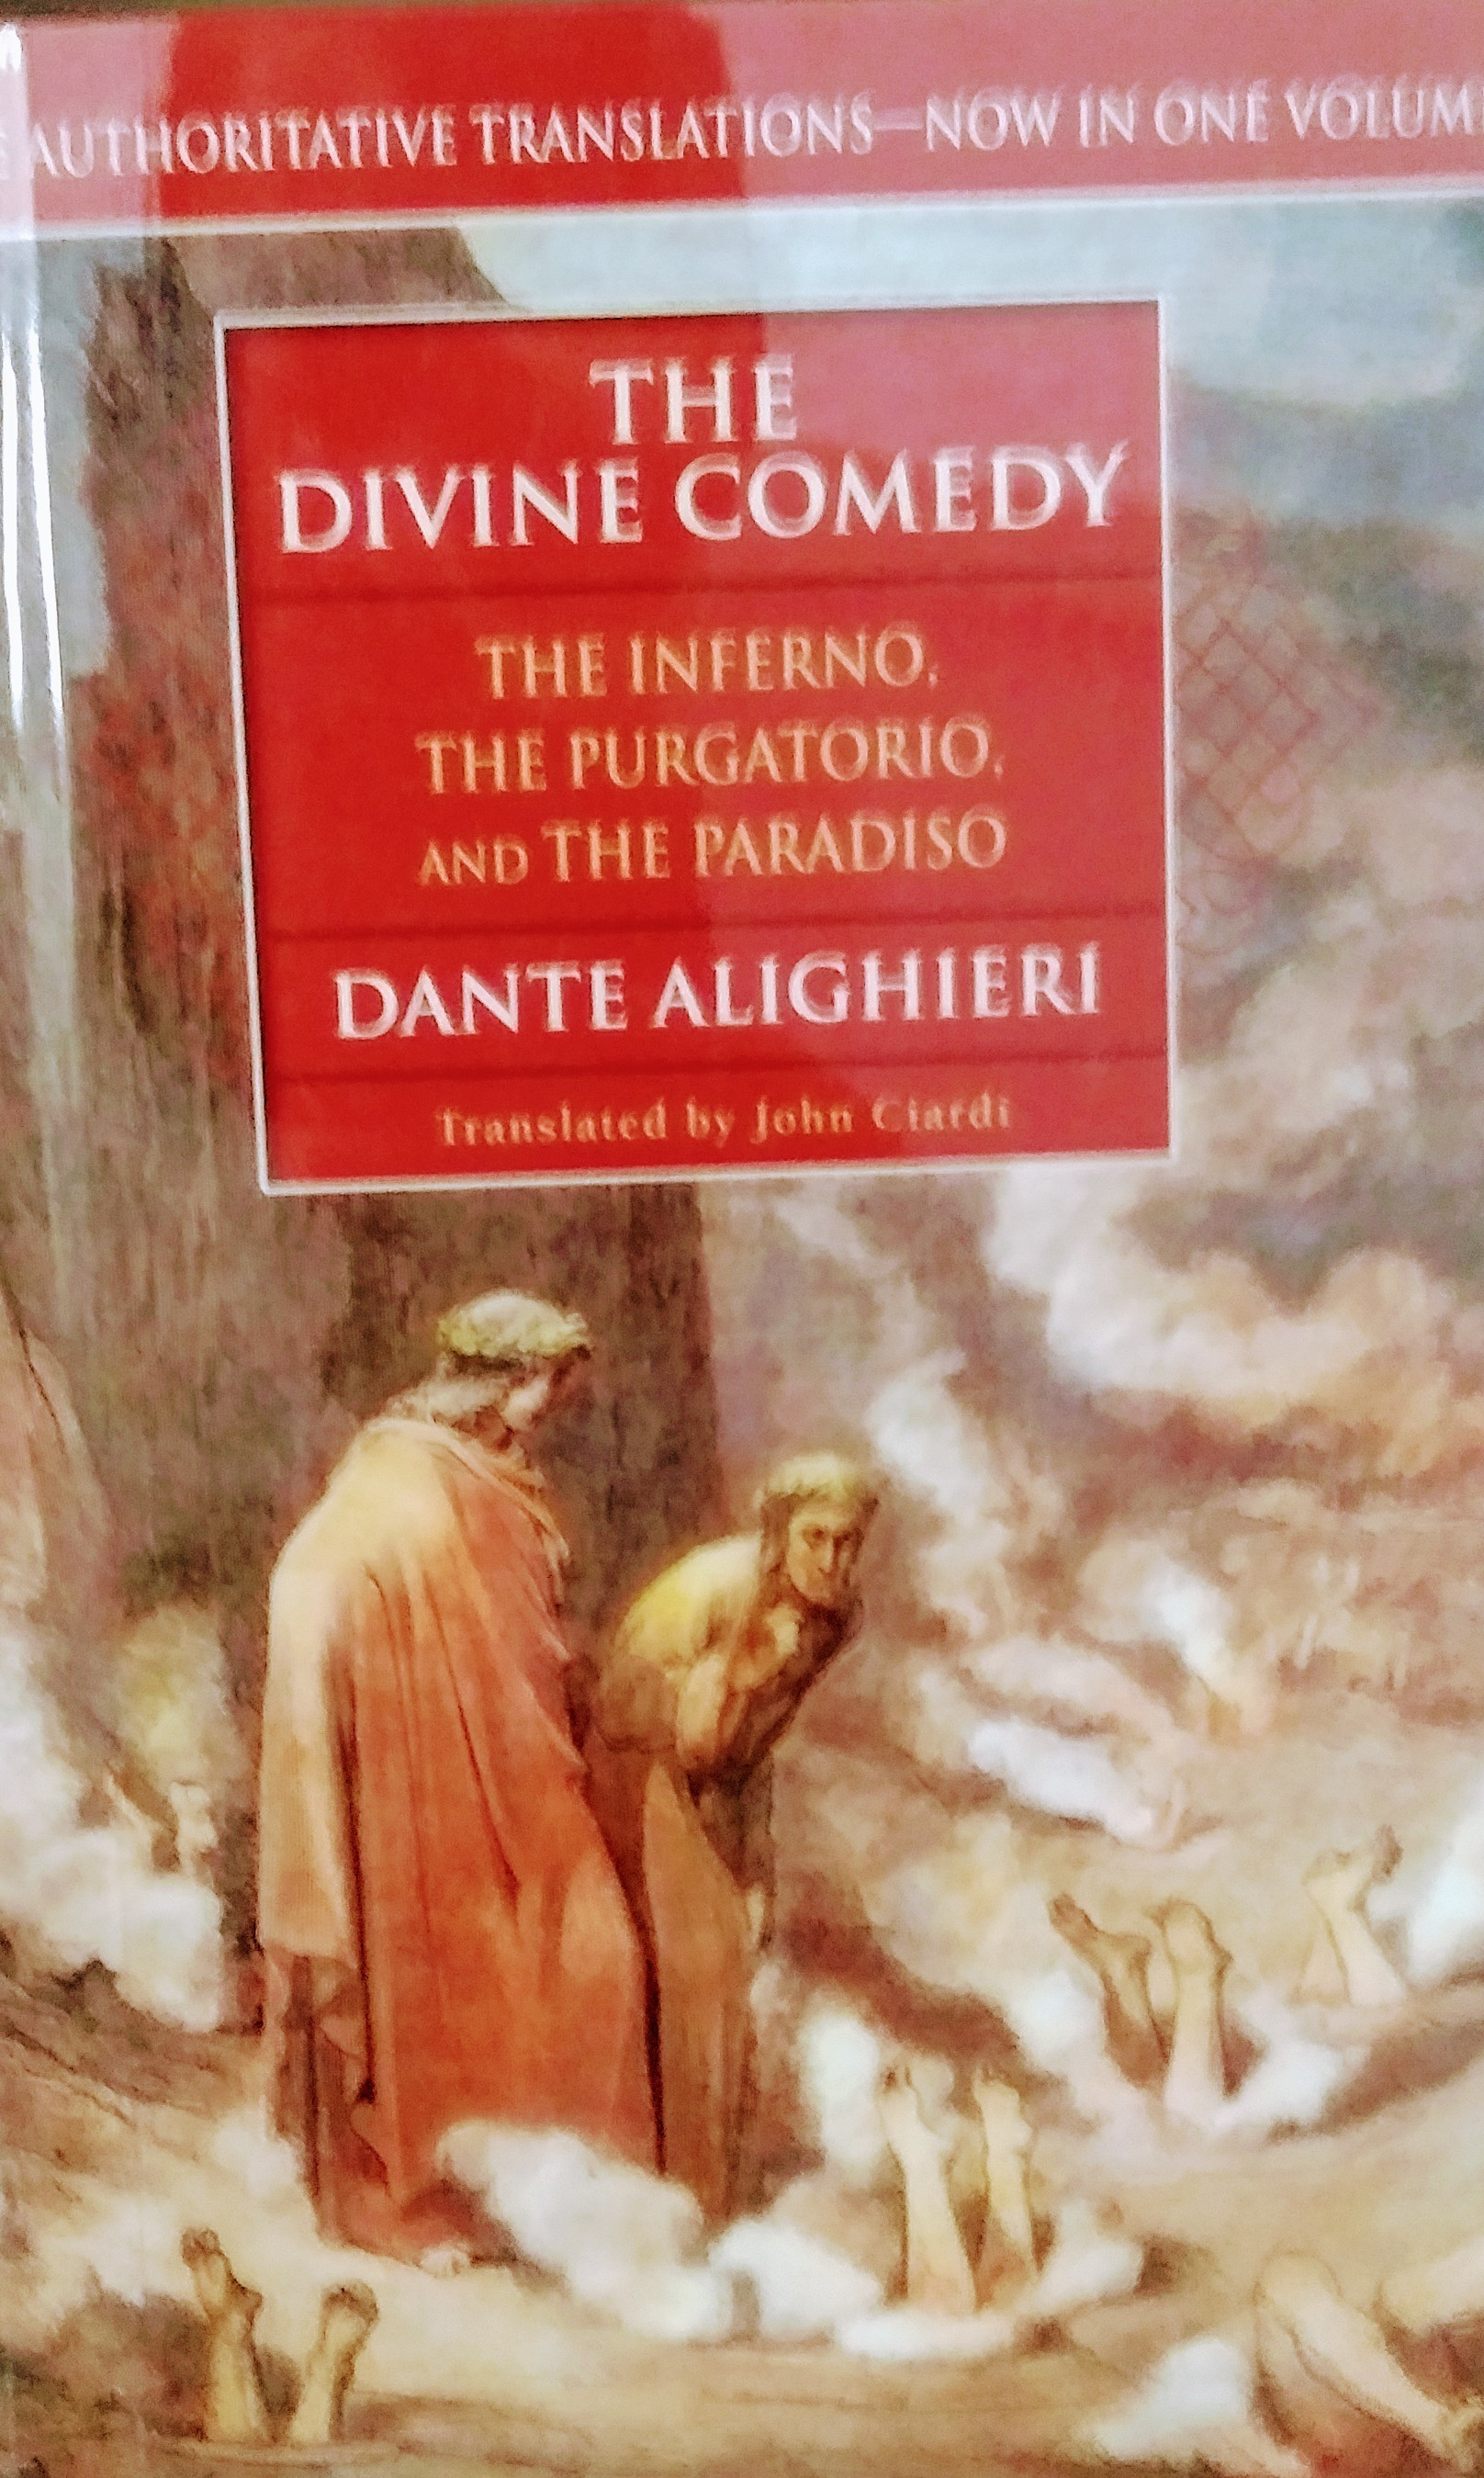 the divine comedy: the inferno, the purgatorio and the paradiso